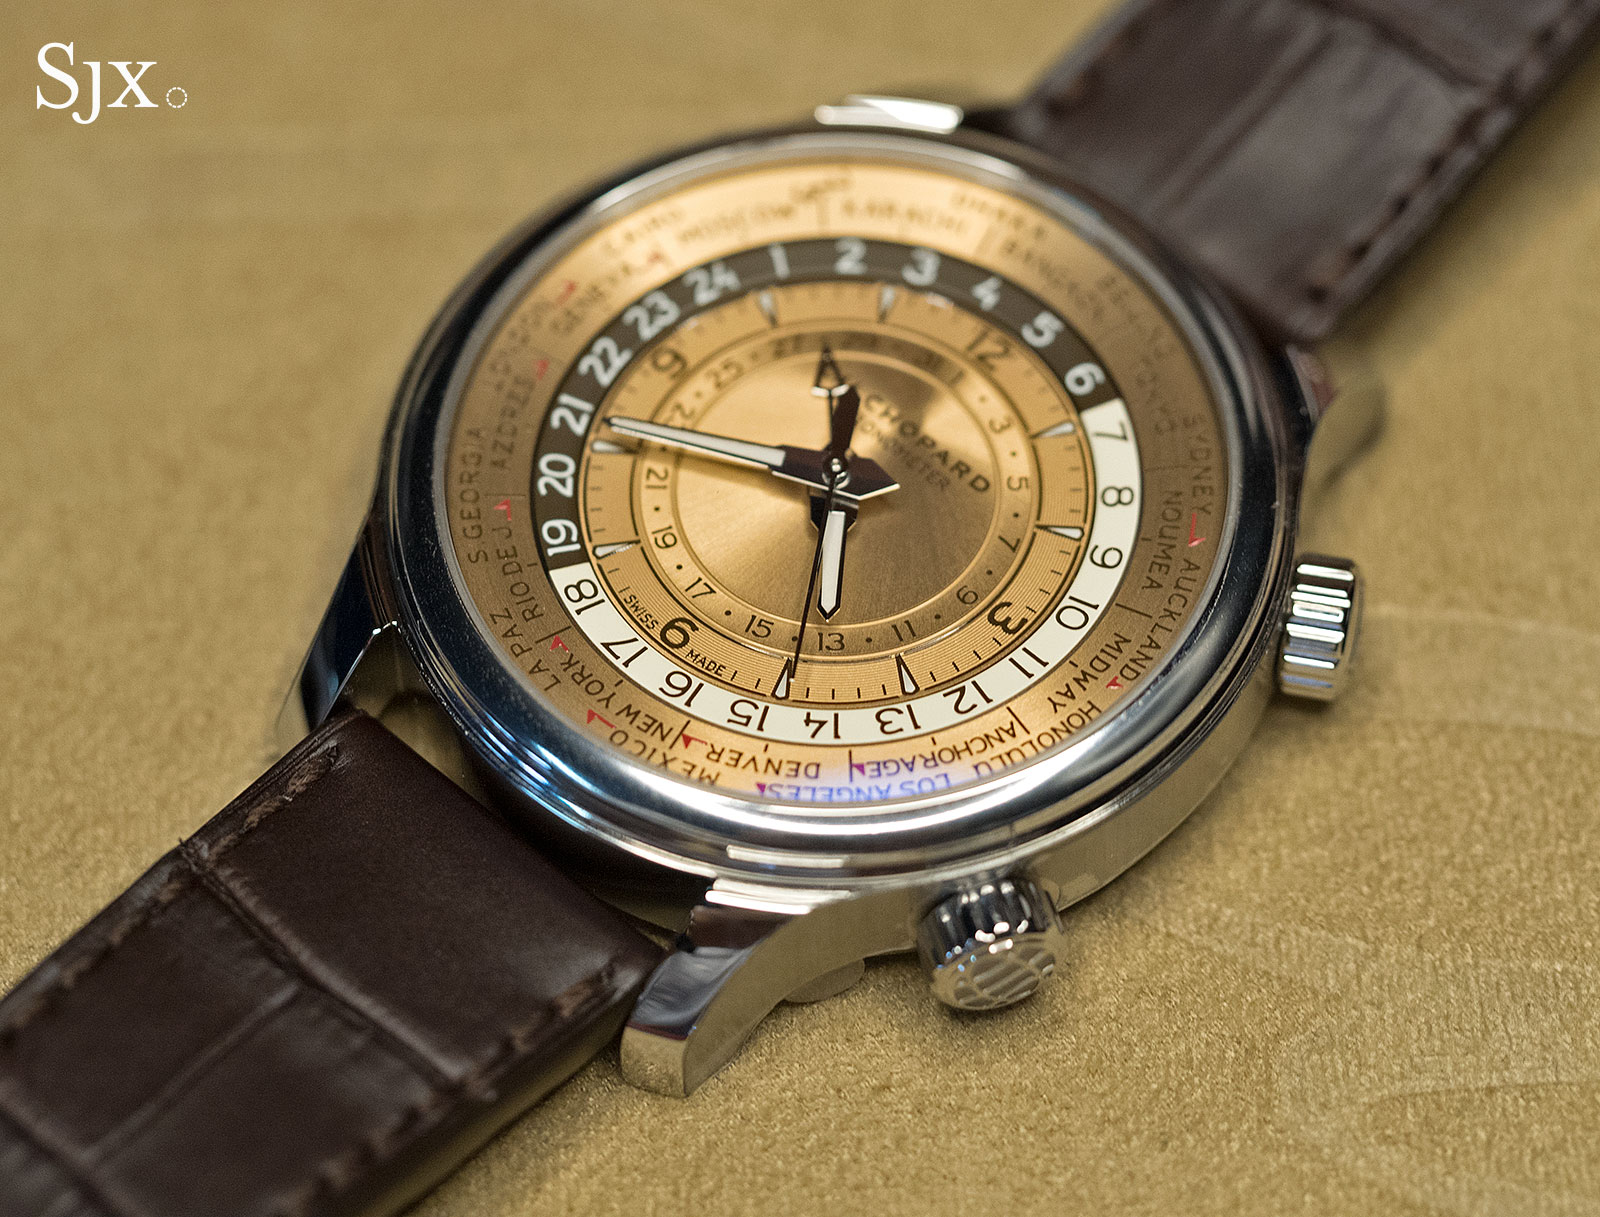 Chopard Time Traveler One UAE Edition 4